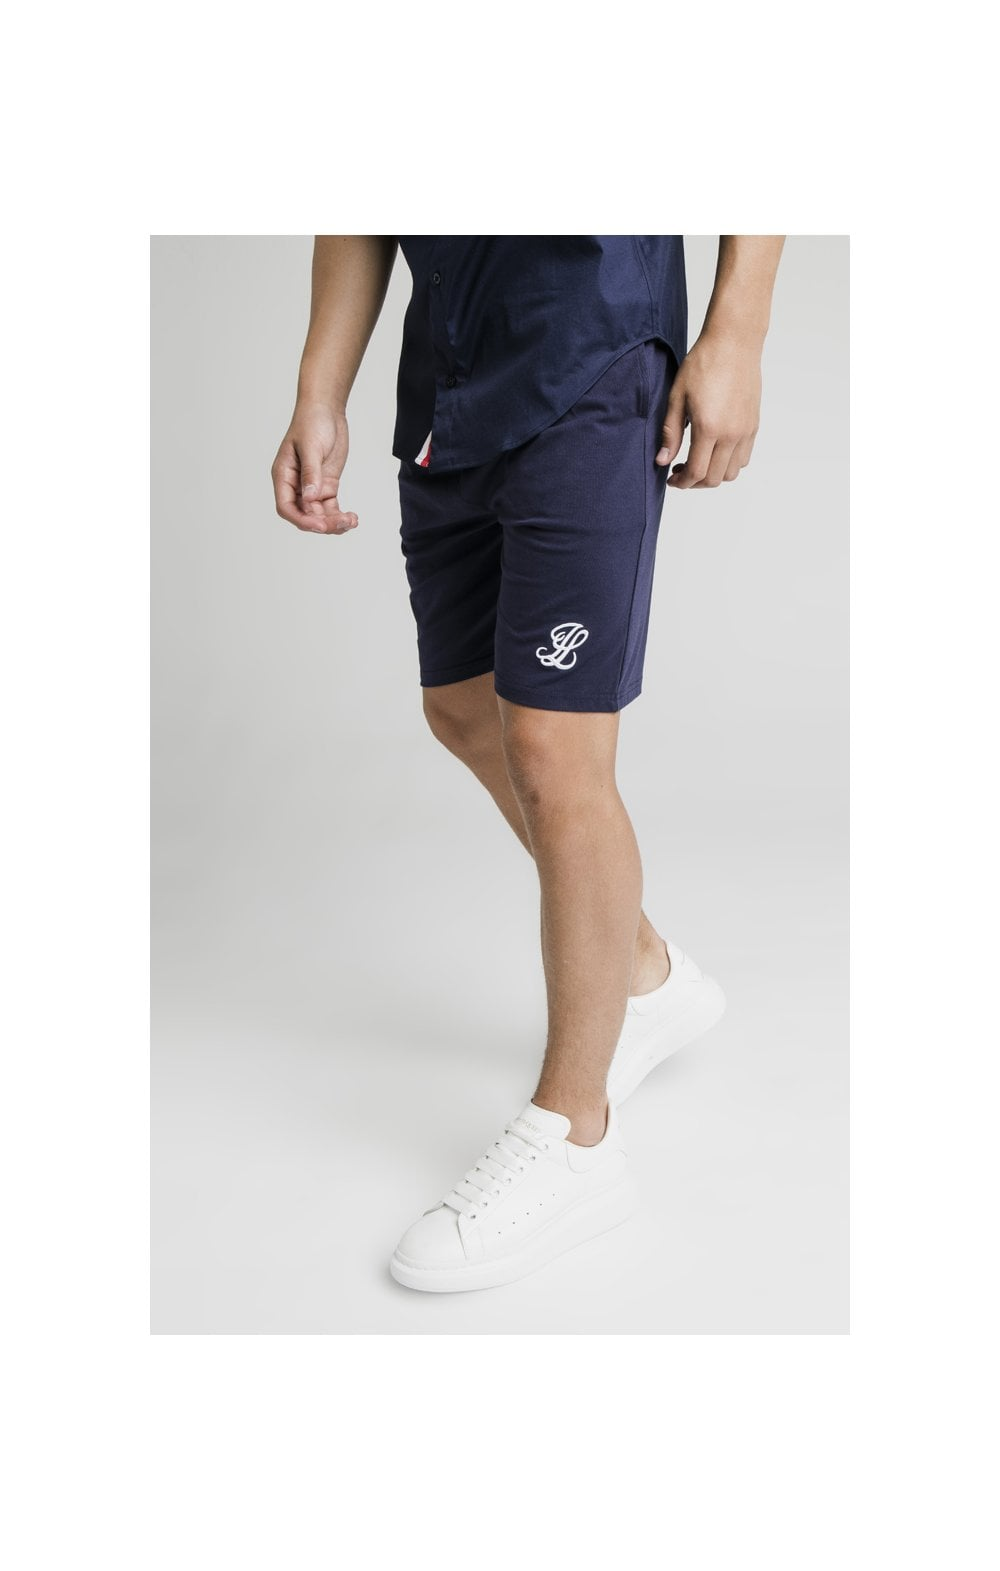 Illusive London Side Tape Jersey Shorts - Navy (2)